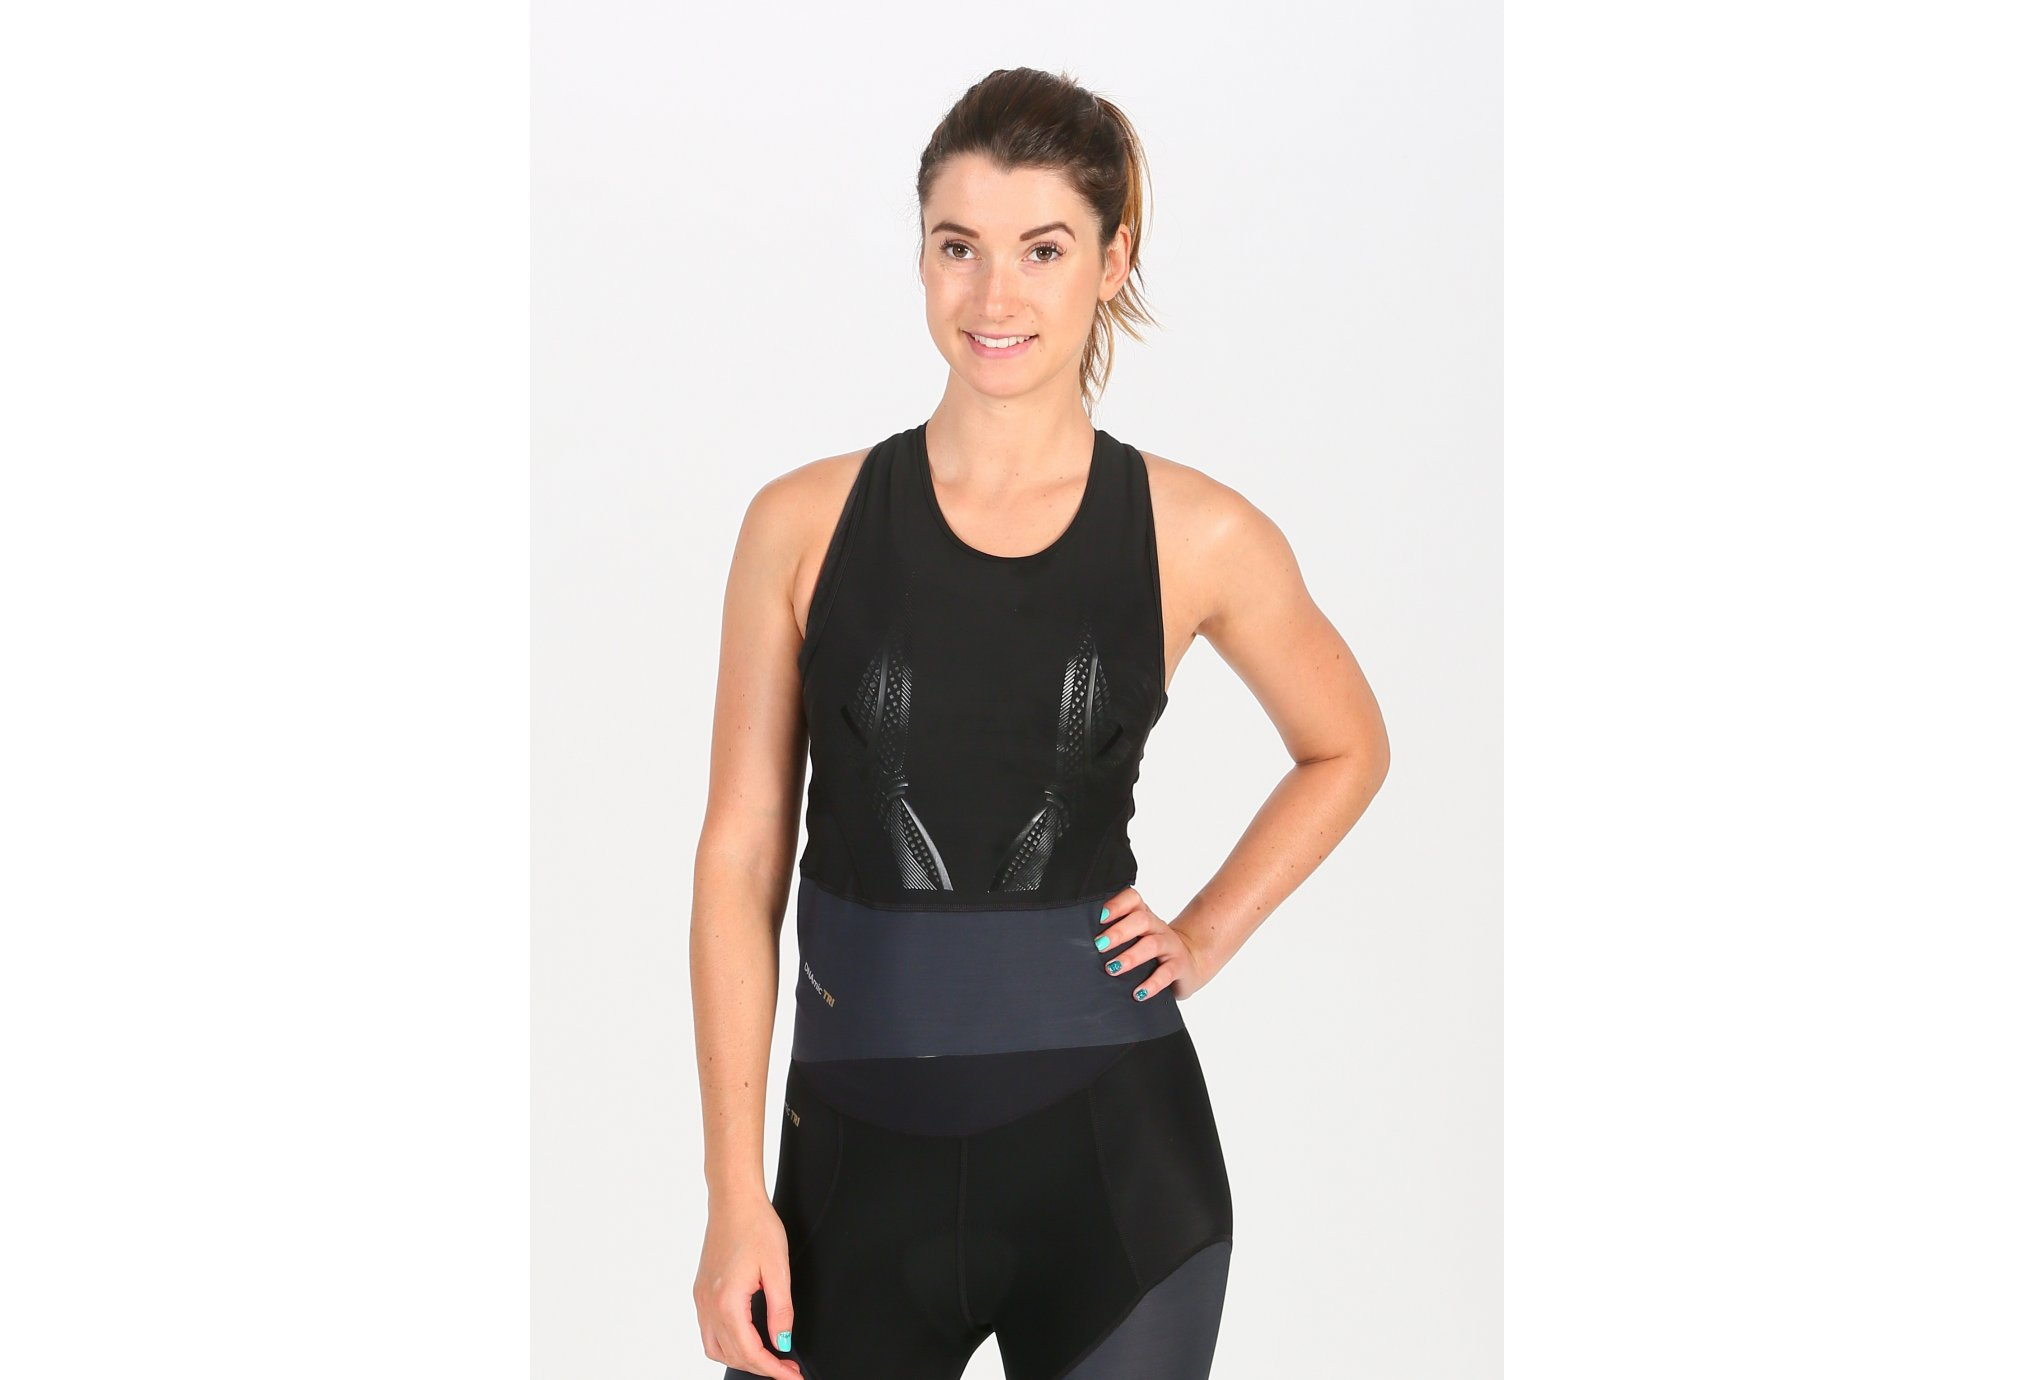 Skins DNAmic Top Triathlon W vêtement running femme